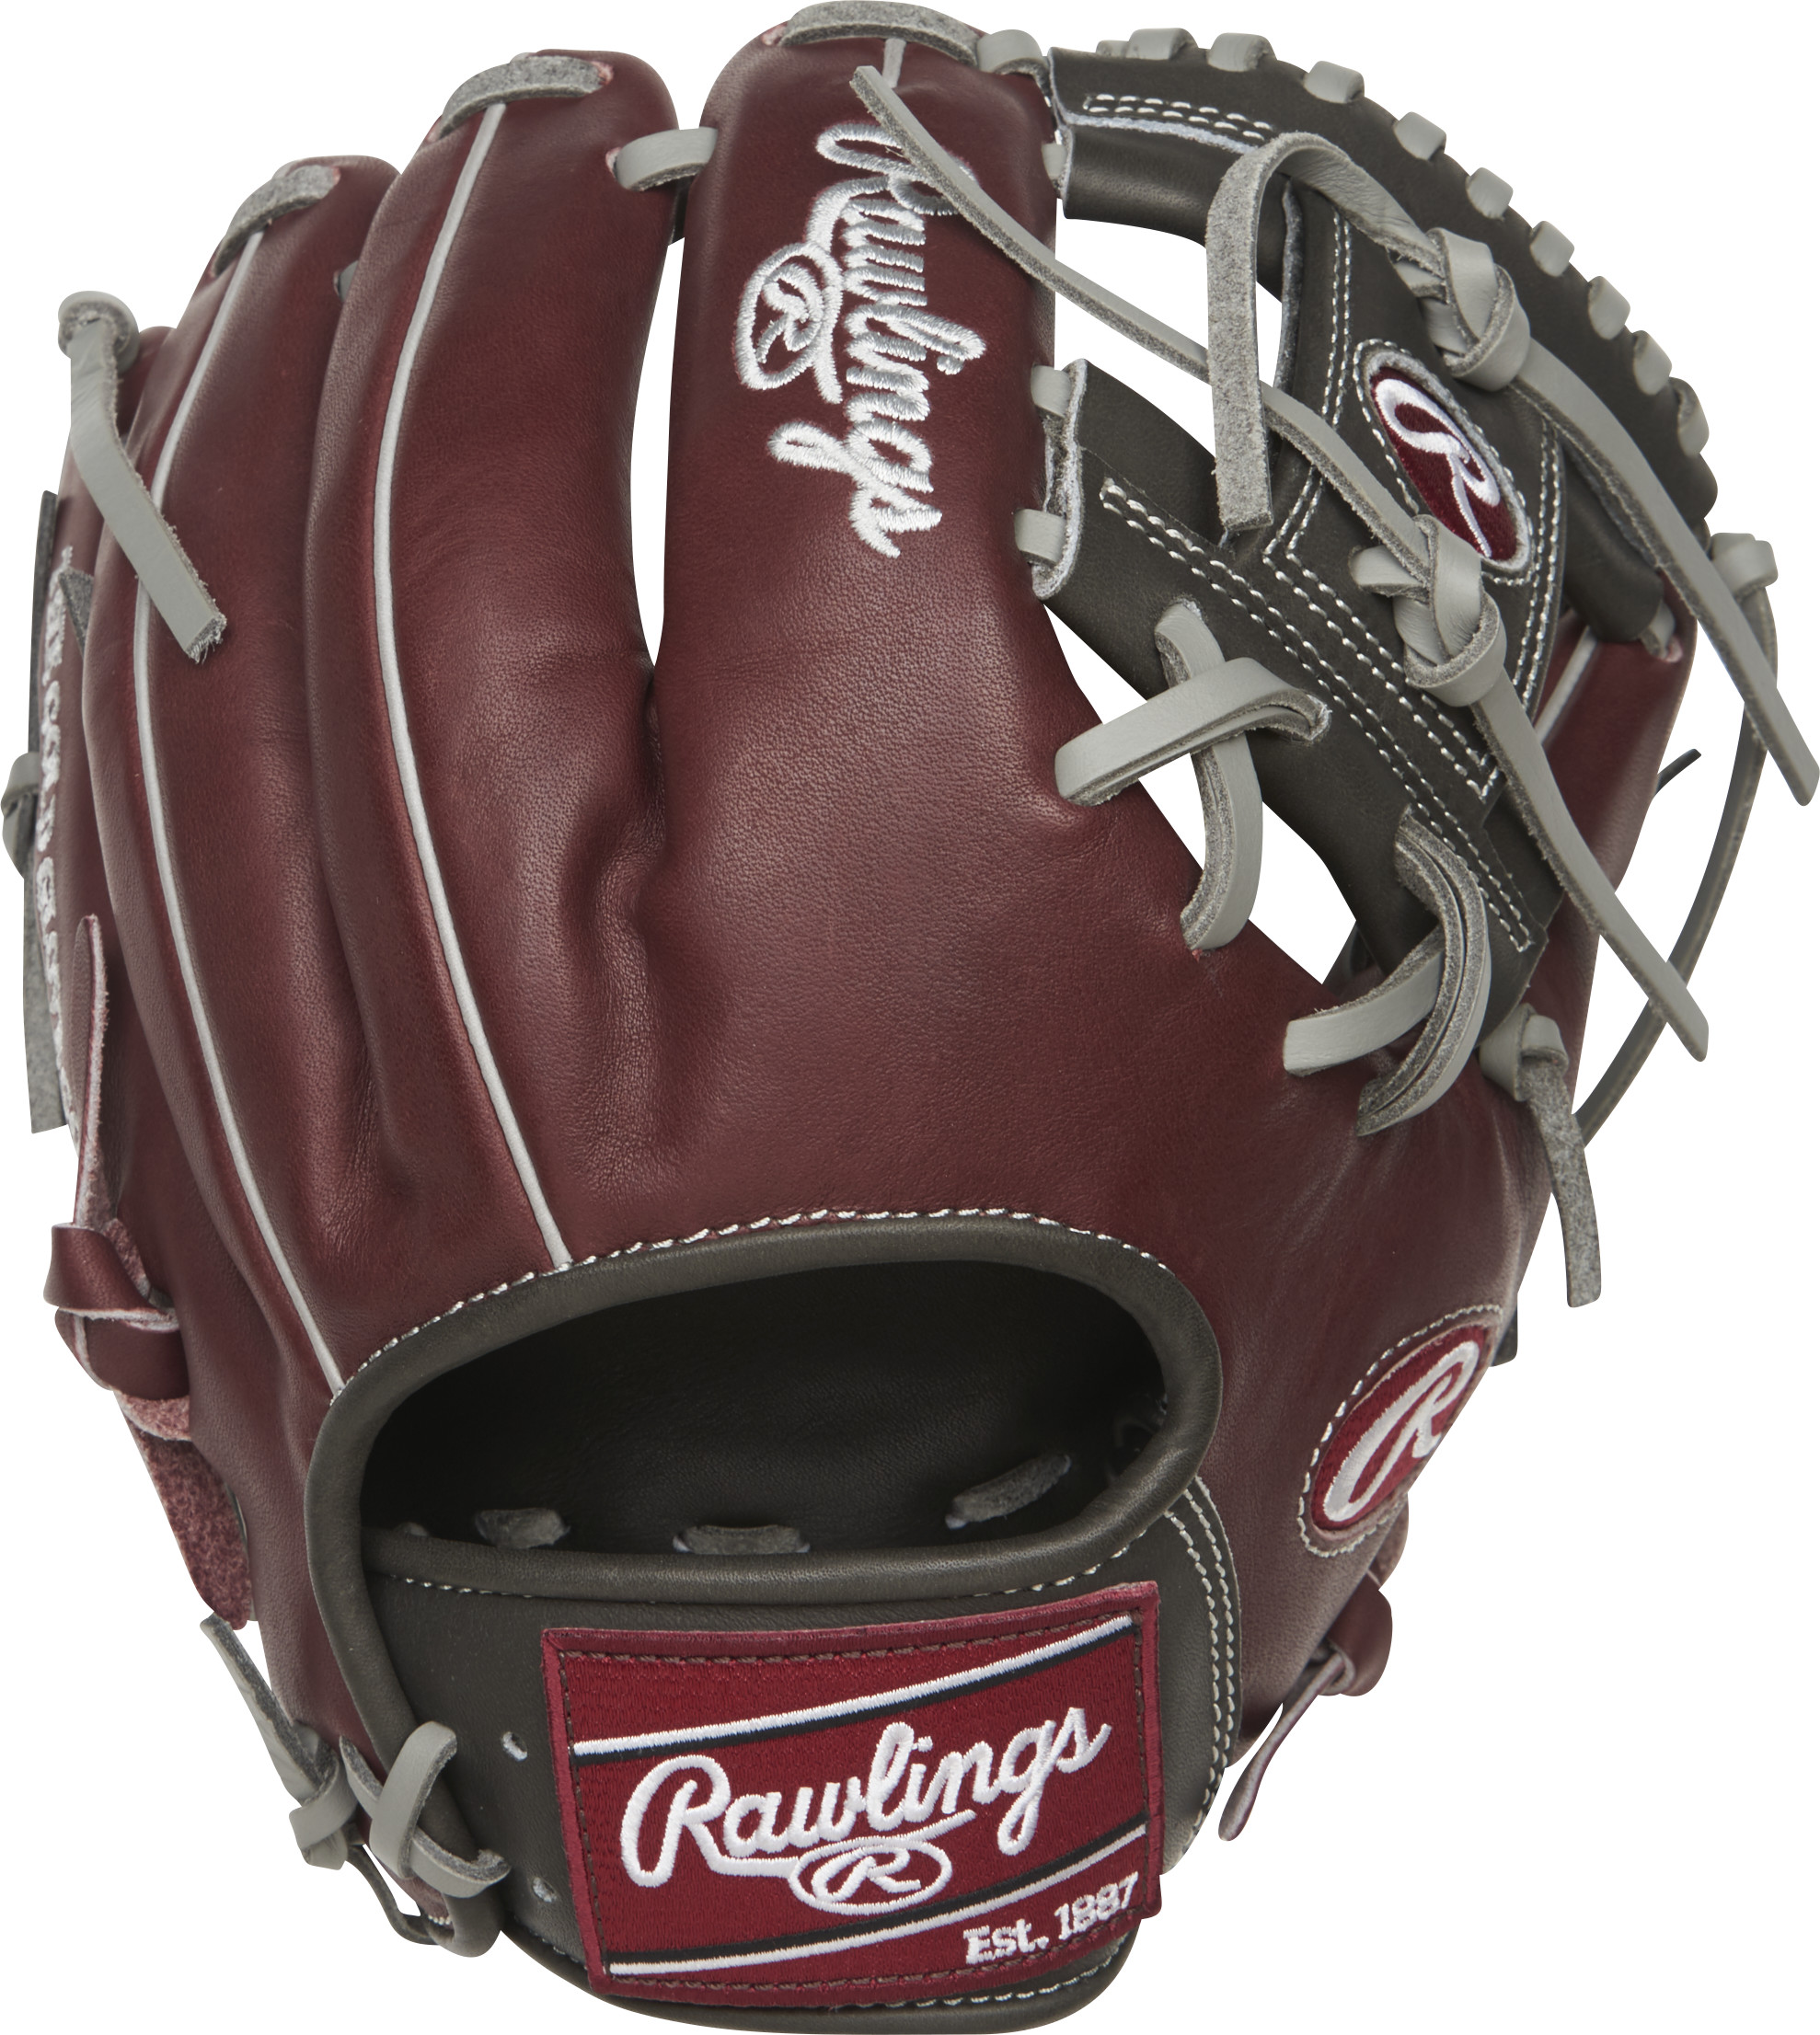 http://www.bestbatdeals.com/images/gloves/rawlings/PRO204-2SHDS-2.jpg